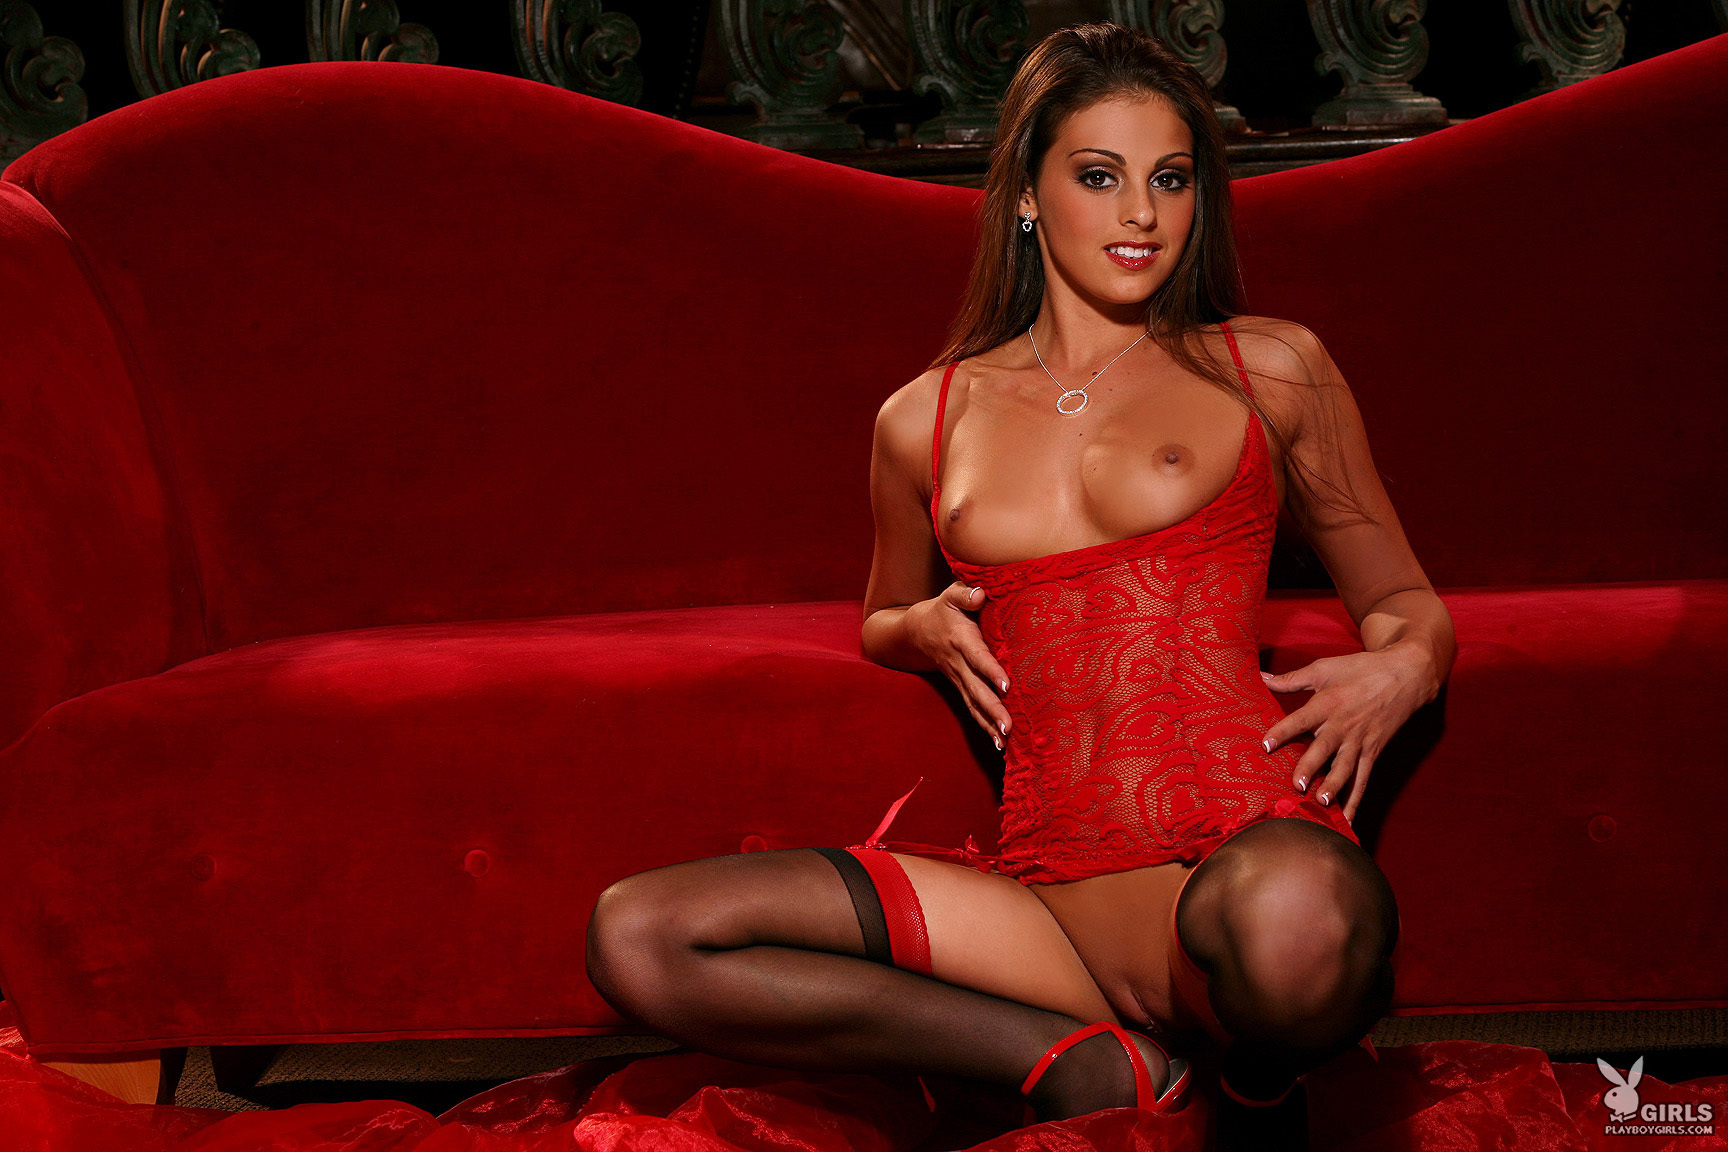 lacey-alexandra-red-nighty-stockings-naked-playboy-18